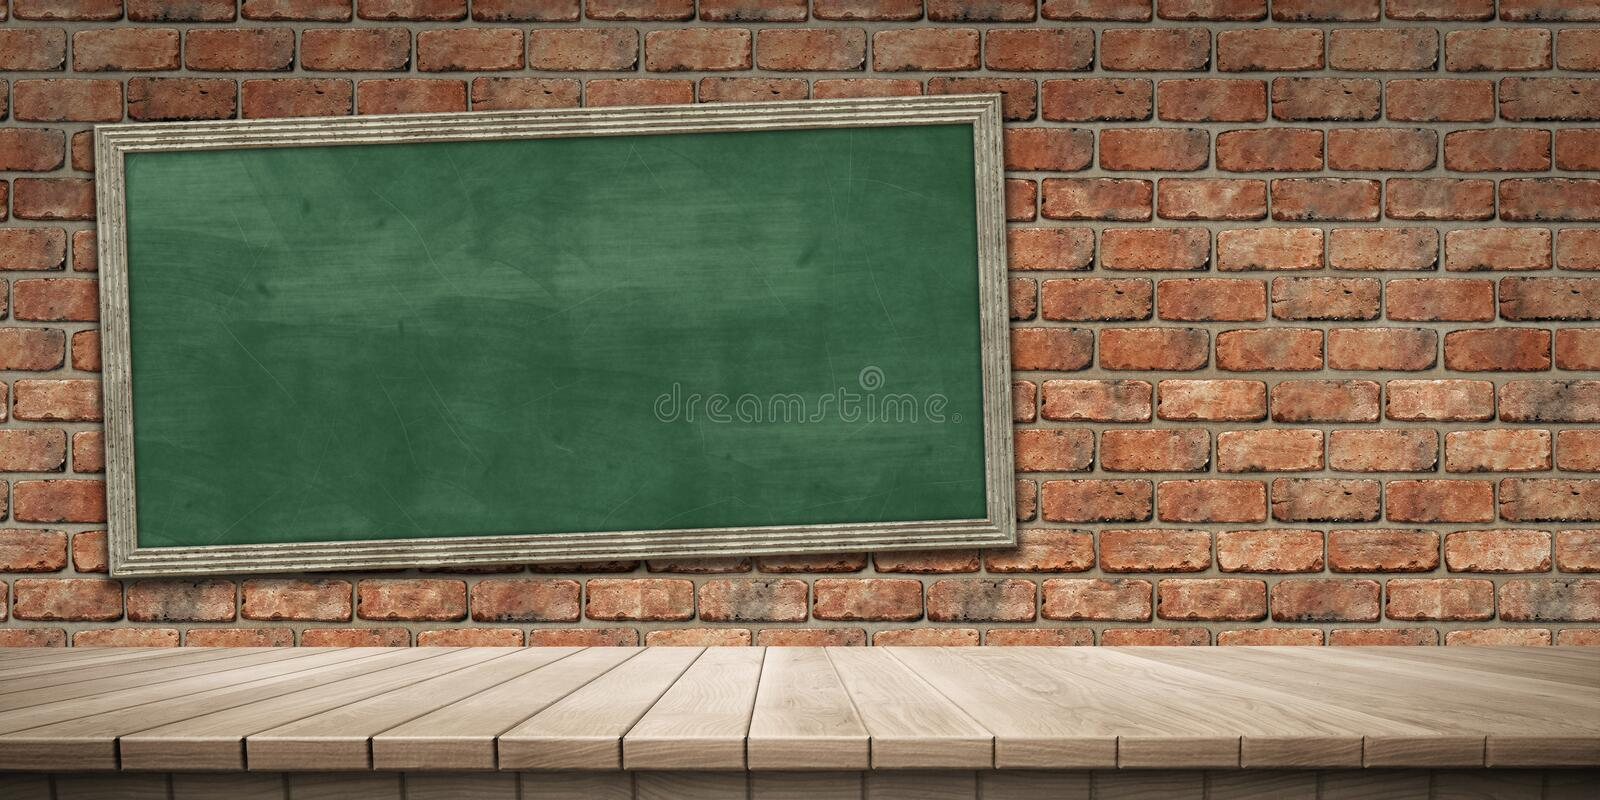 Closeup of colorful wooden platform and blackboard/chalkboard background, front view. High-resolution 3D CG rendering illustration stock illustration